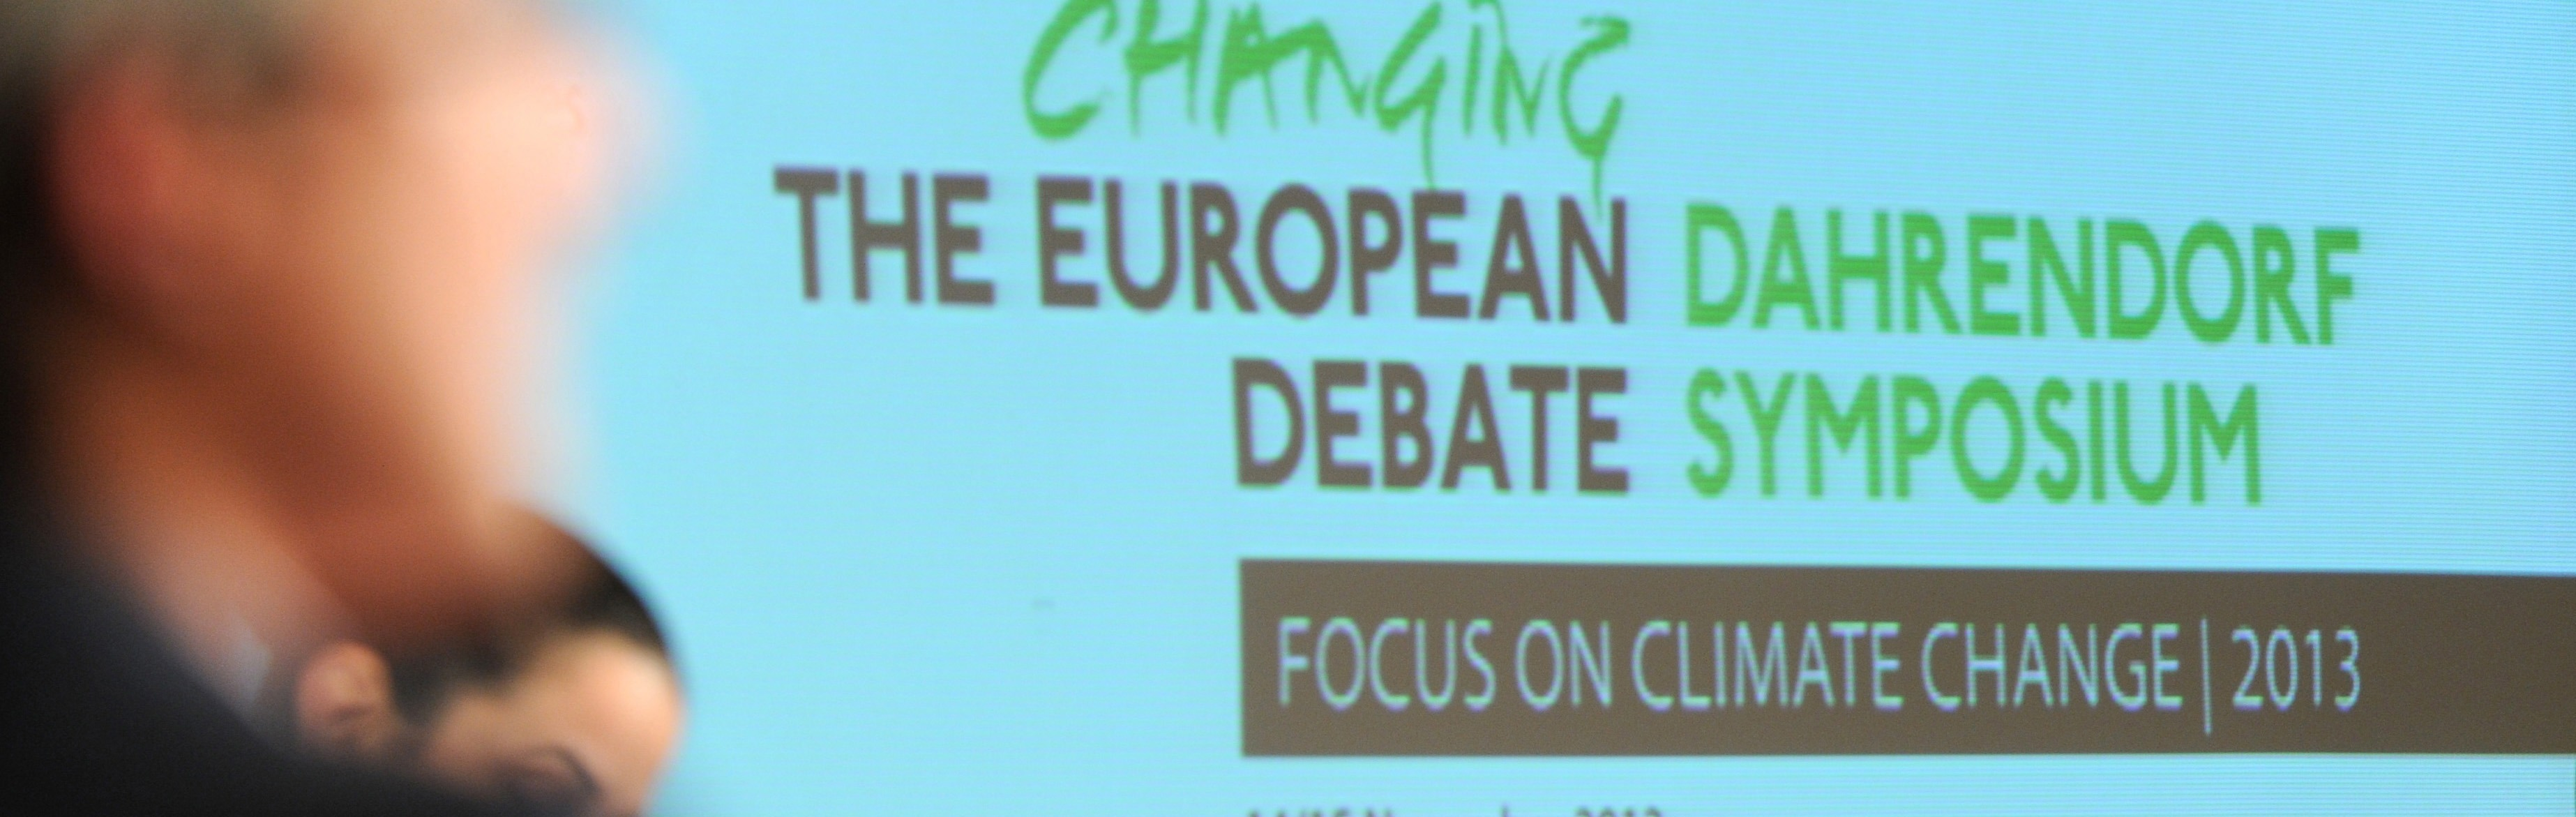 Changing the European Debate Dahrendorfer Symposium der Hertie School of Governance Stiftung Mercator & The London School ofEconomics and Political Science in Berlin Akademie der Künste